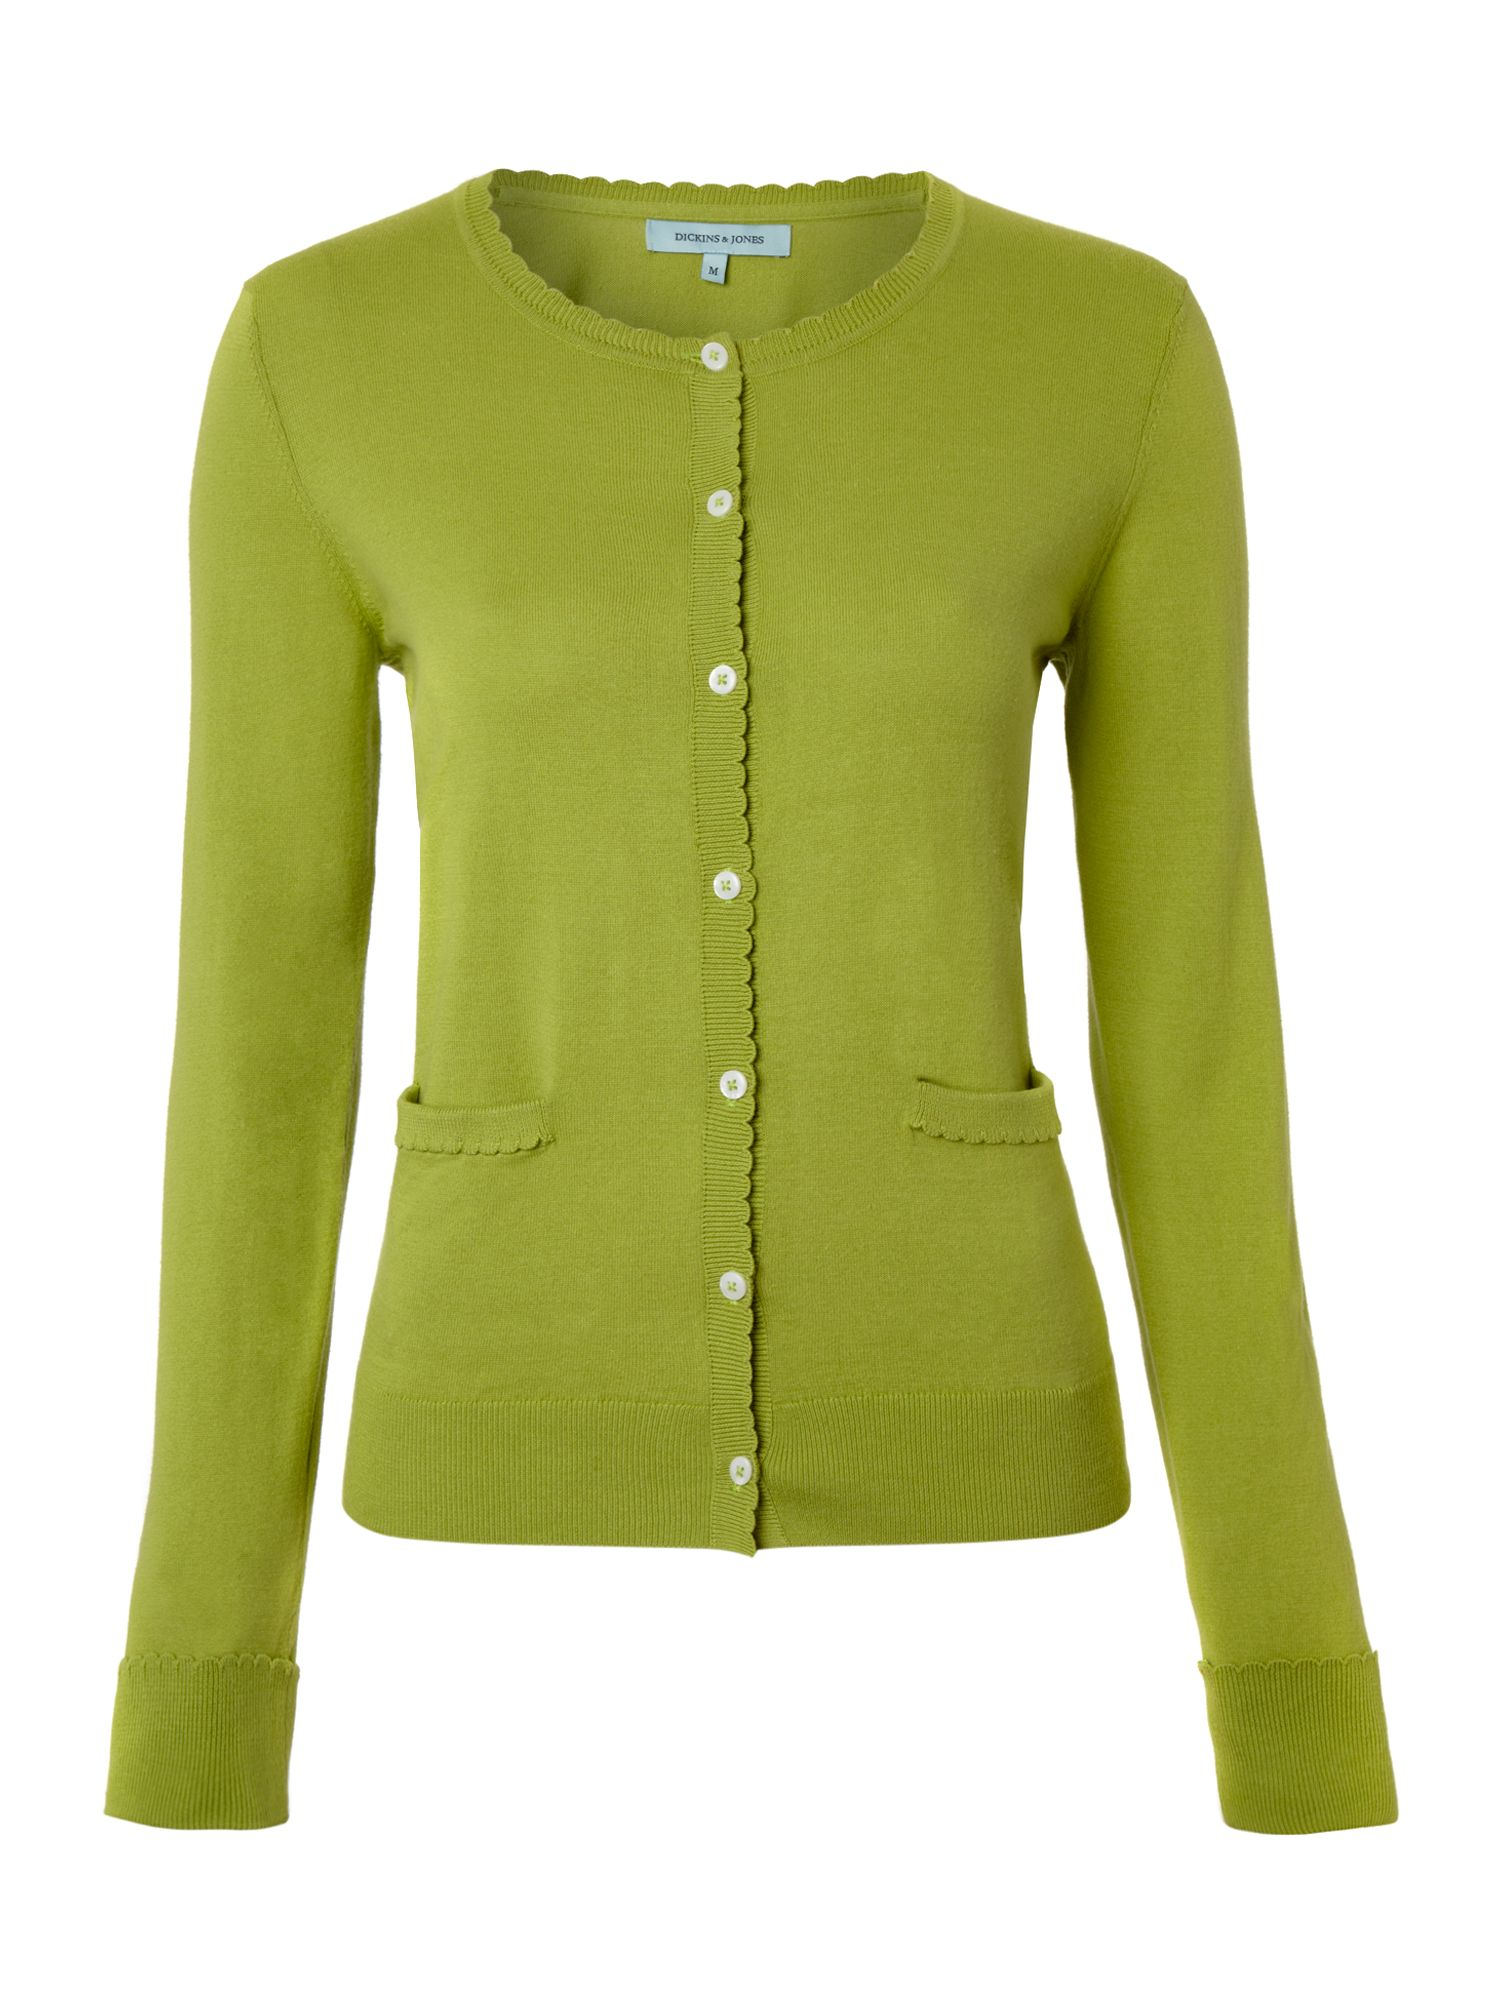 Ladies scallop edge knit cardigan